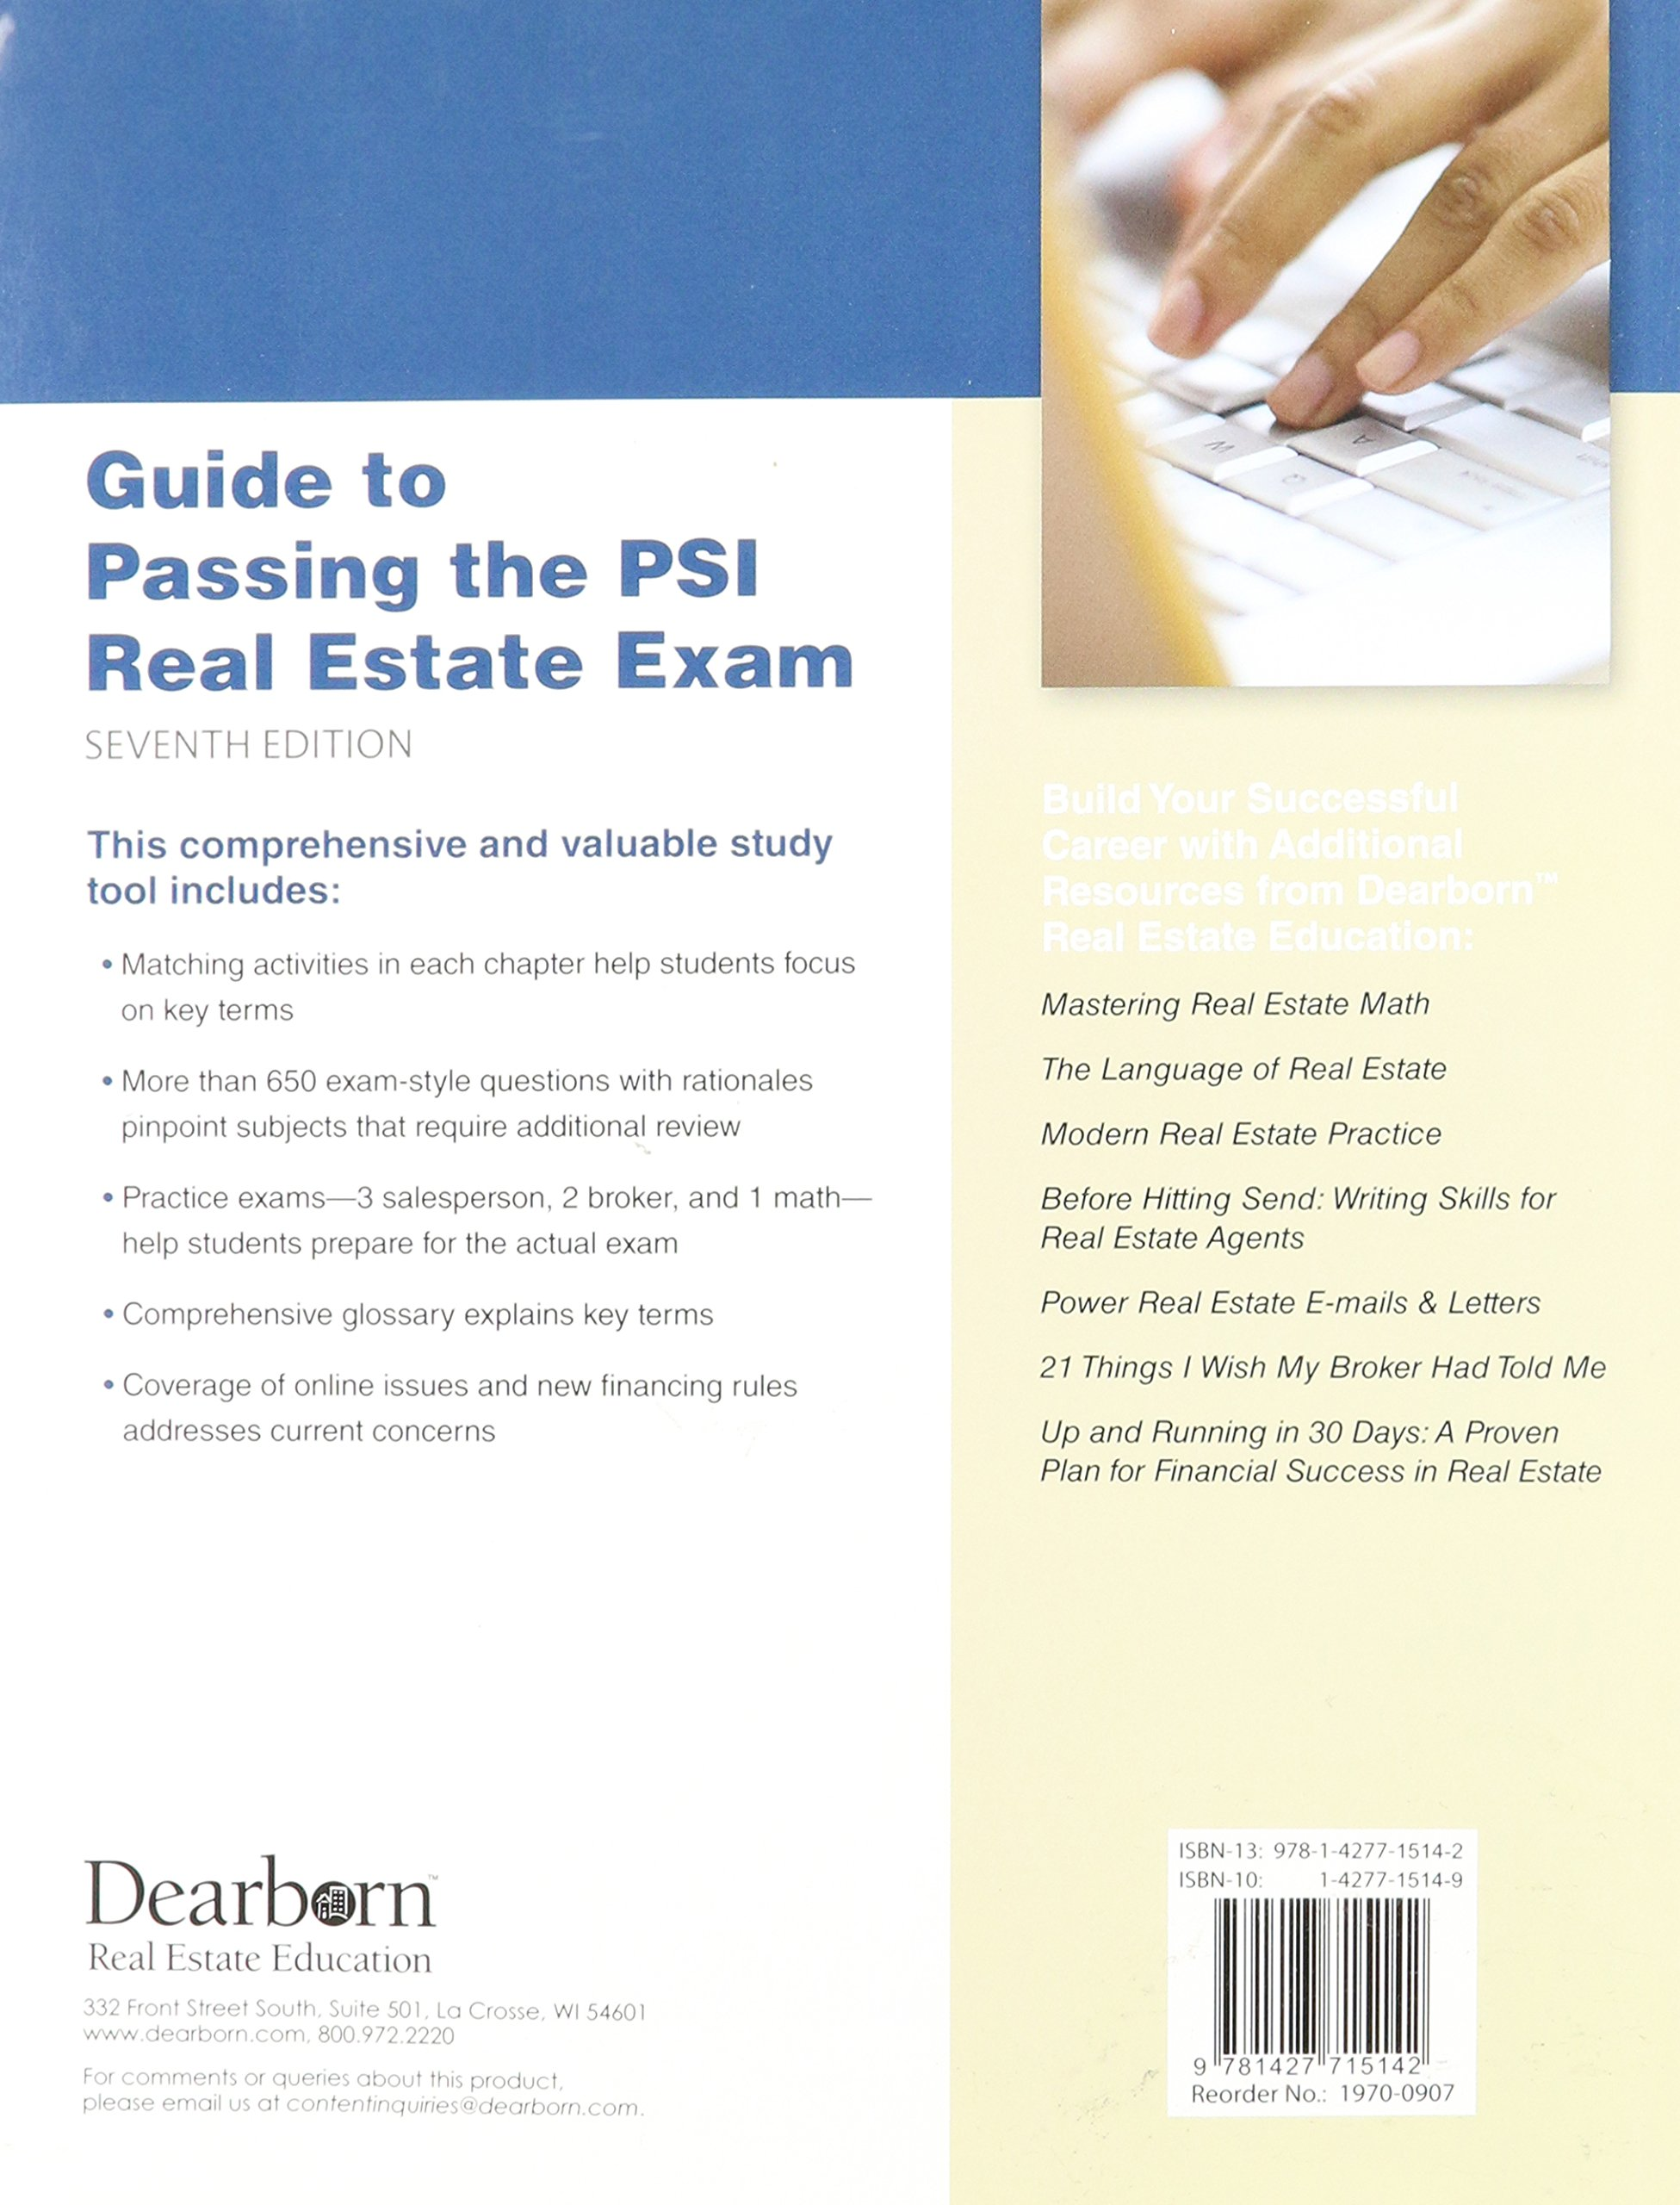 Guide to Passing the PSI Real Estate Exam, 7th Edition: Lawrence Sager:  9781427715142: Amazon.com: Books